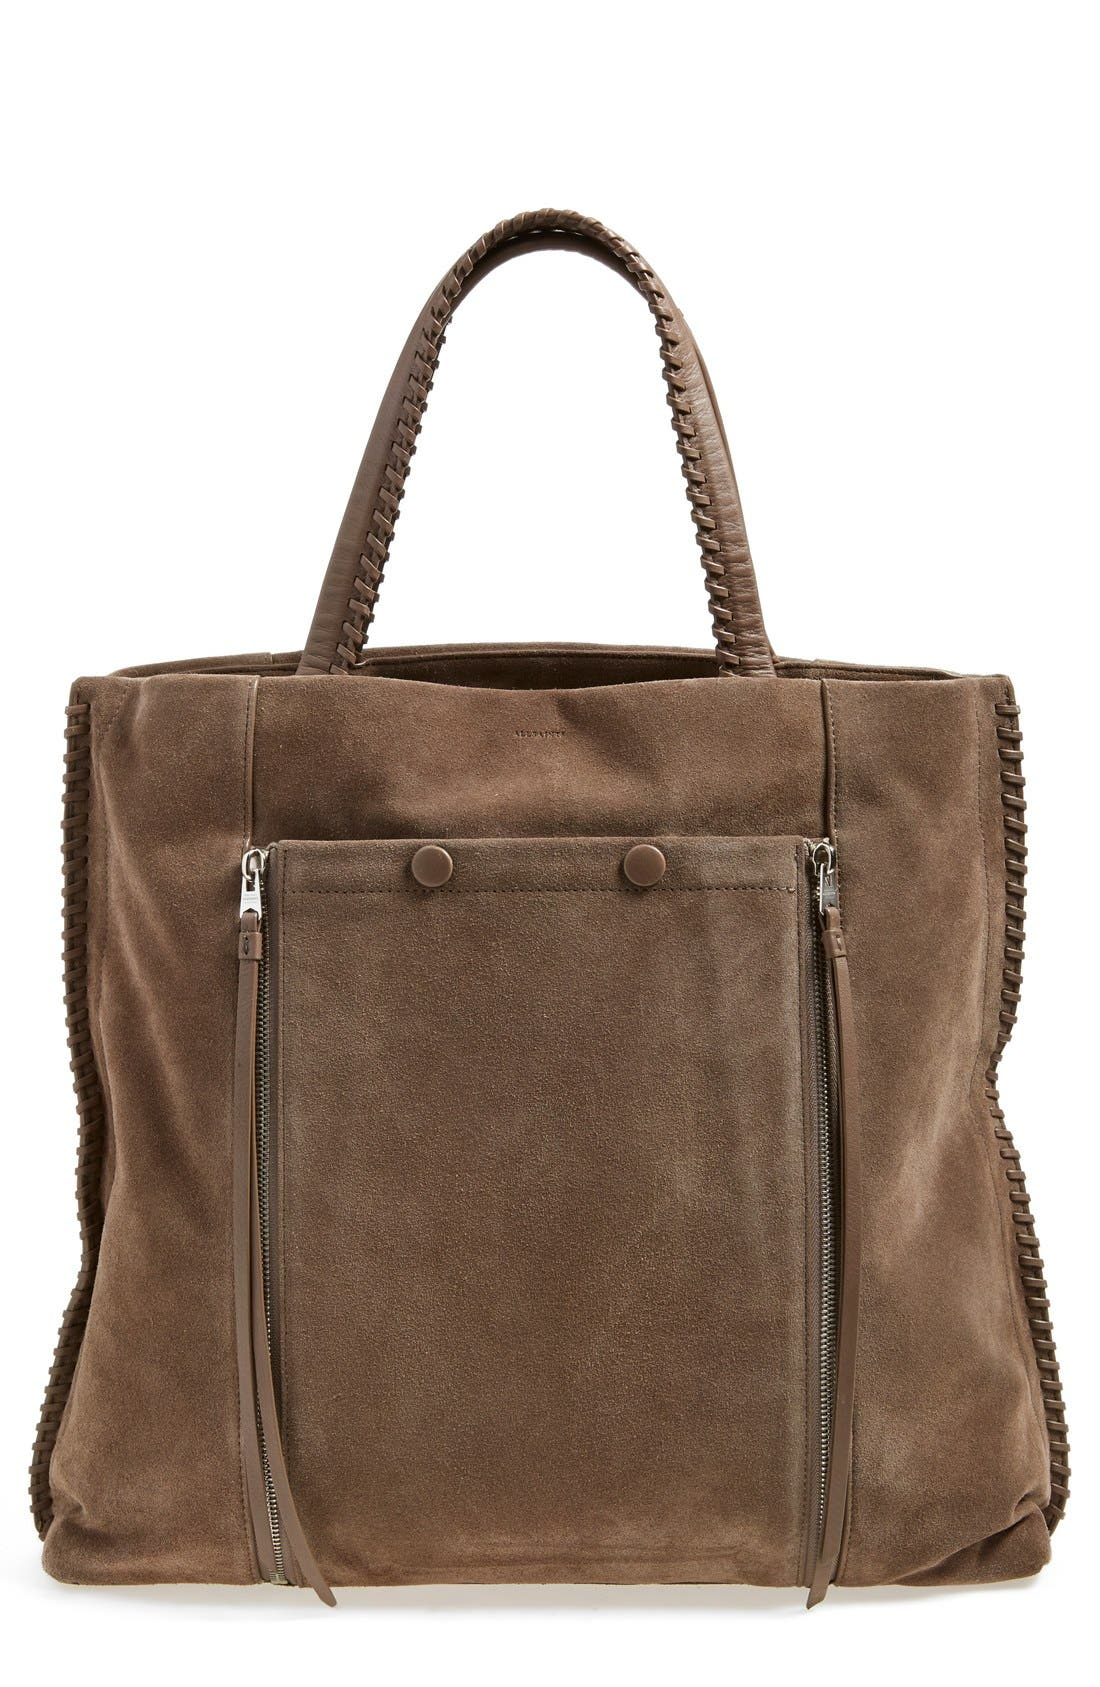 'Fleurdelis North/South' Tote,                         Main,                         color, Almond/ Taupe